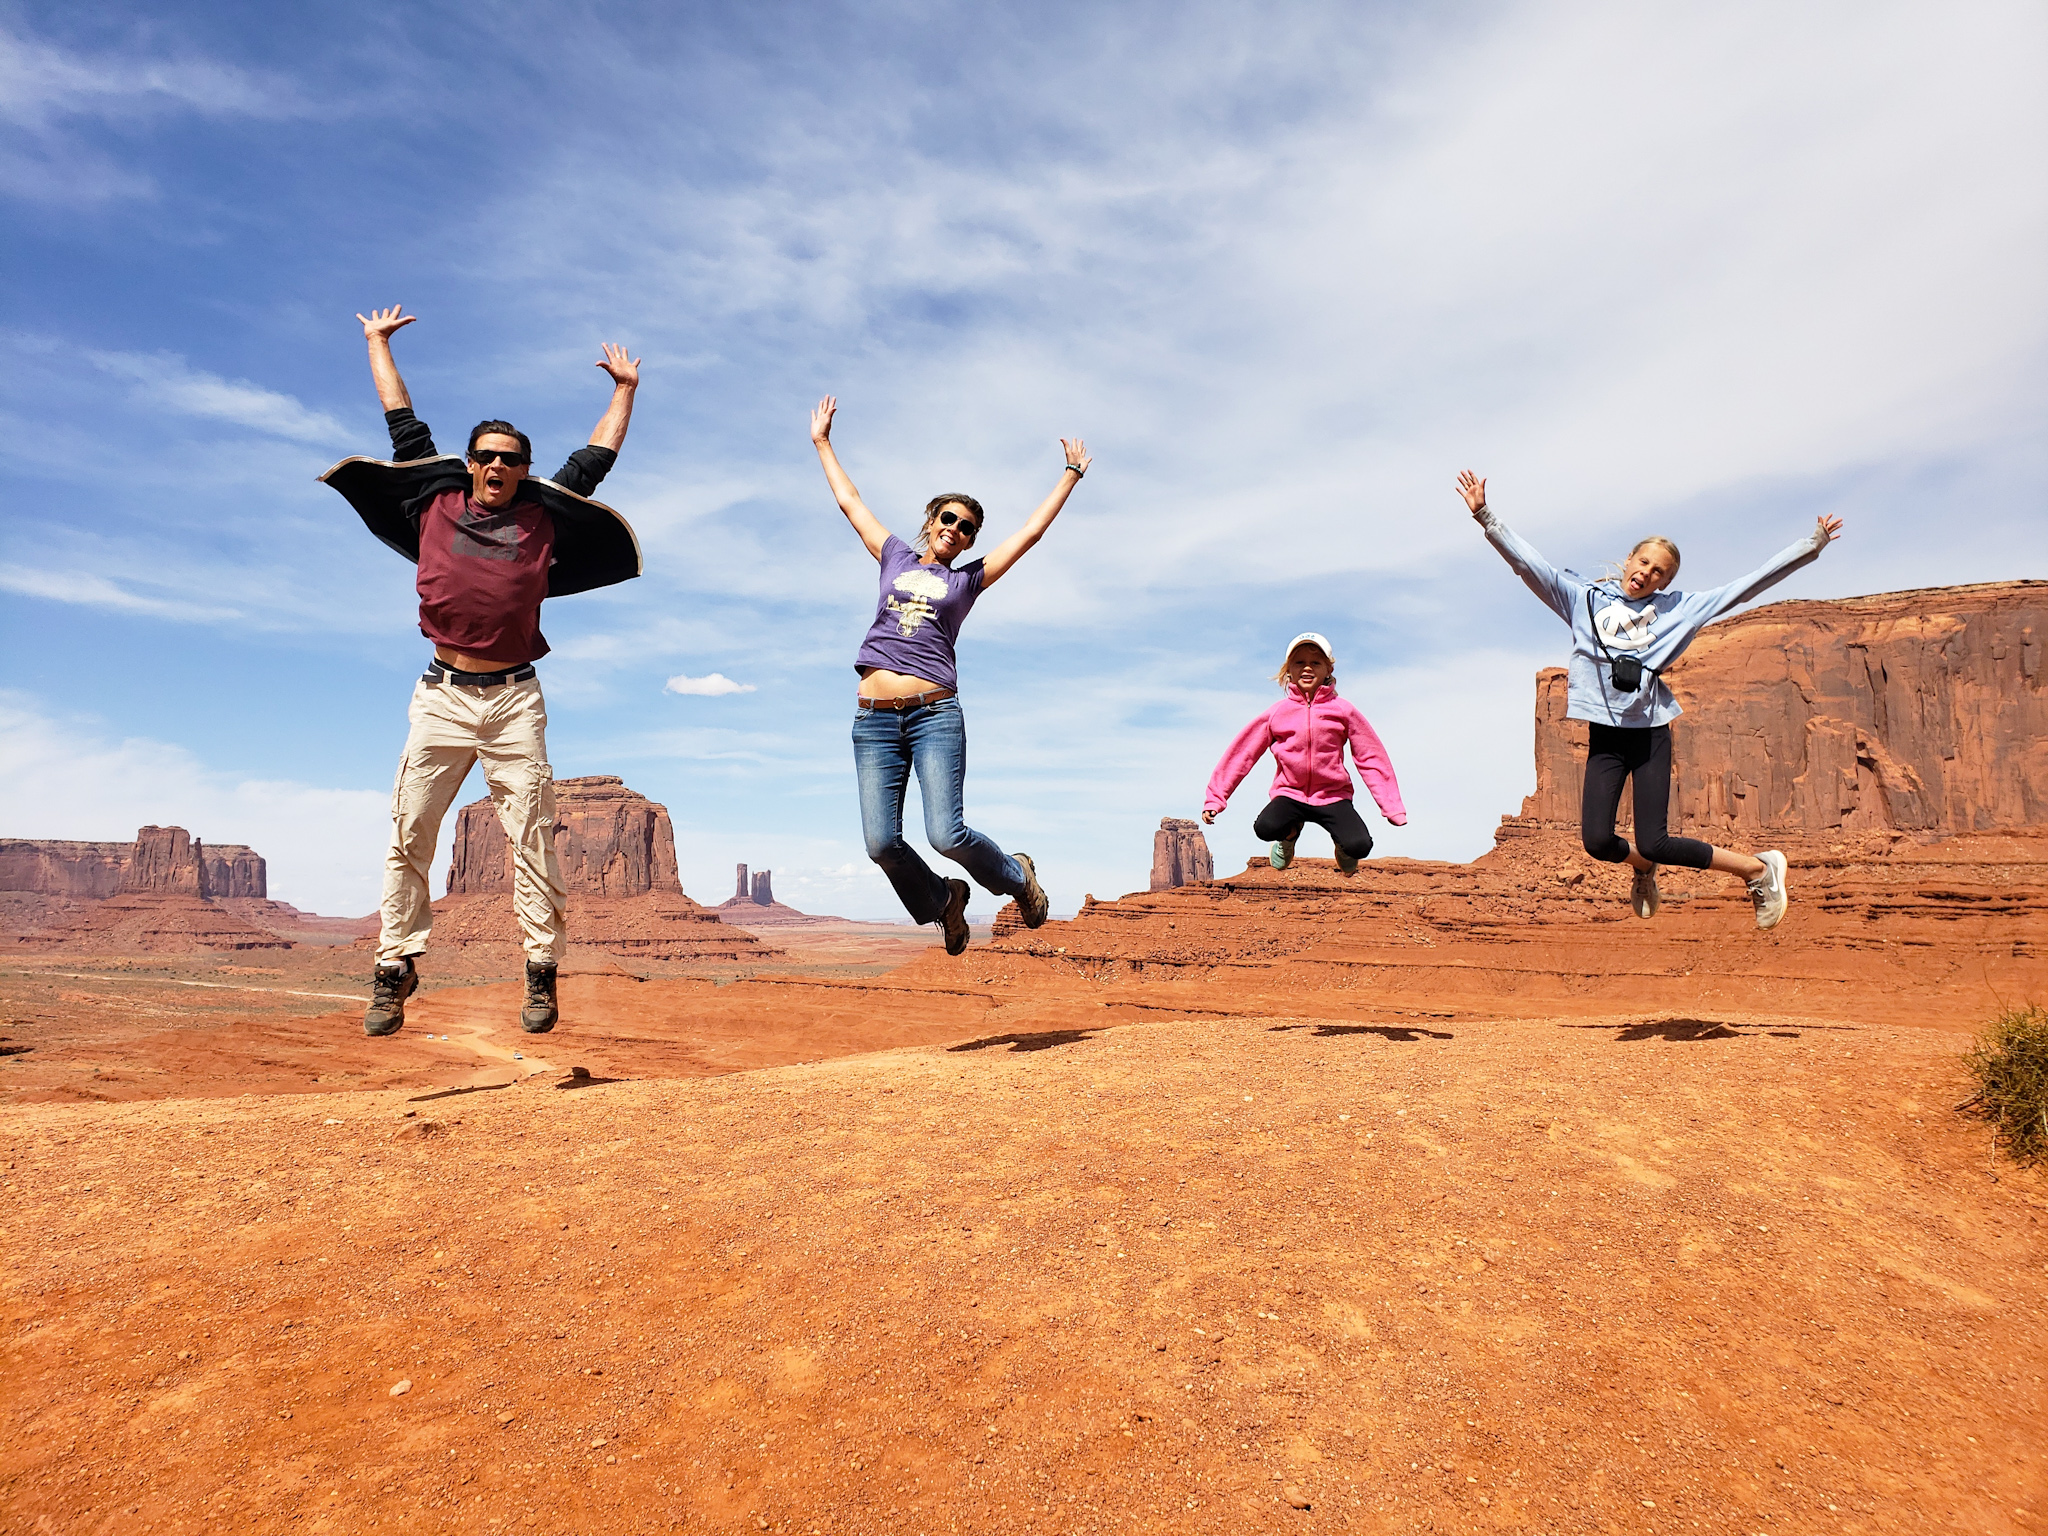 The family behind YTravel Blog jumping in the air in the desert